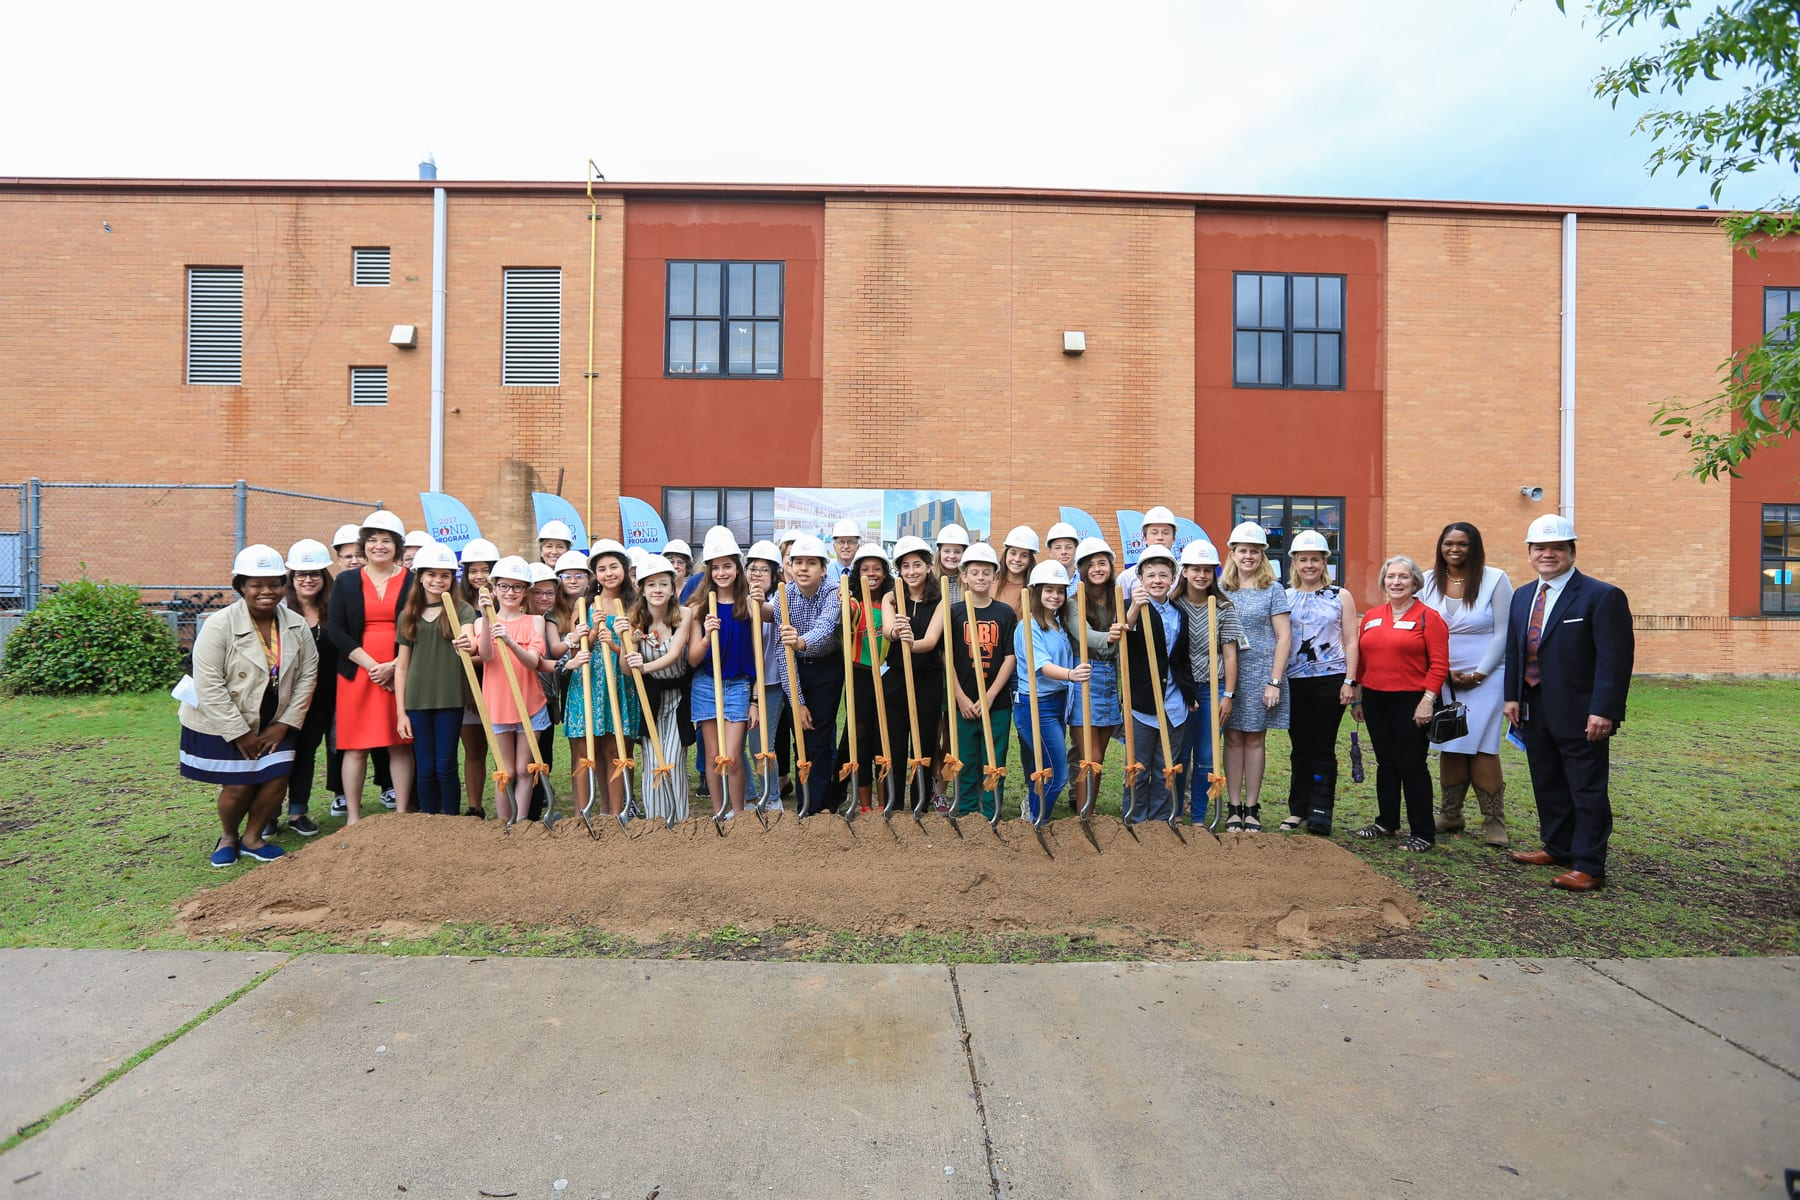 Murchison_Middle_School_Groundbreaking_Photo